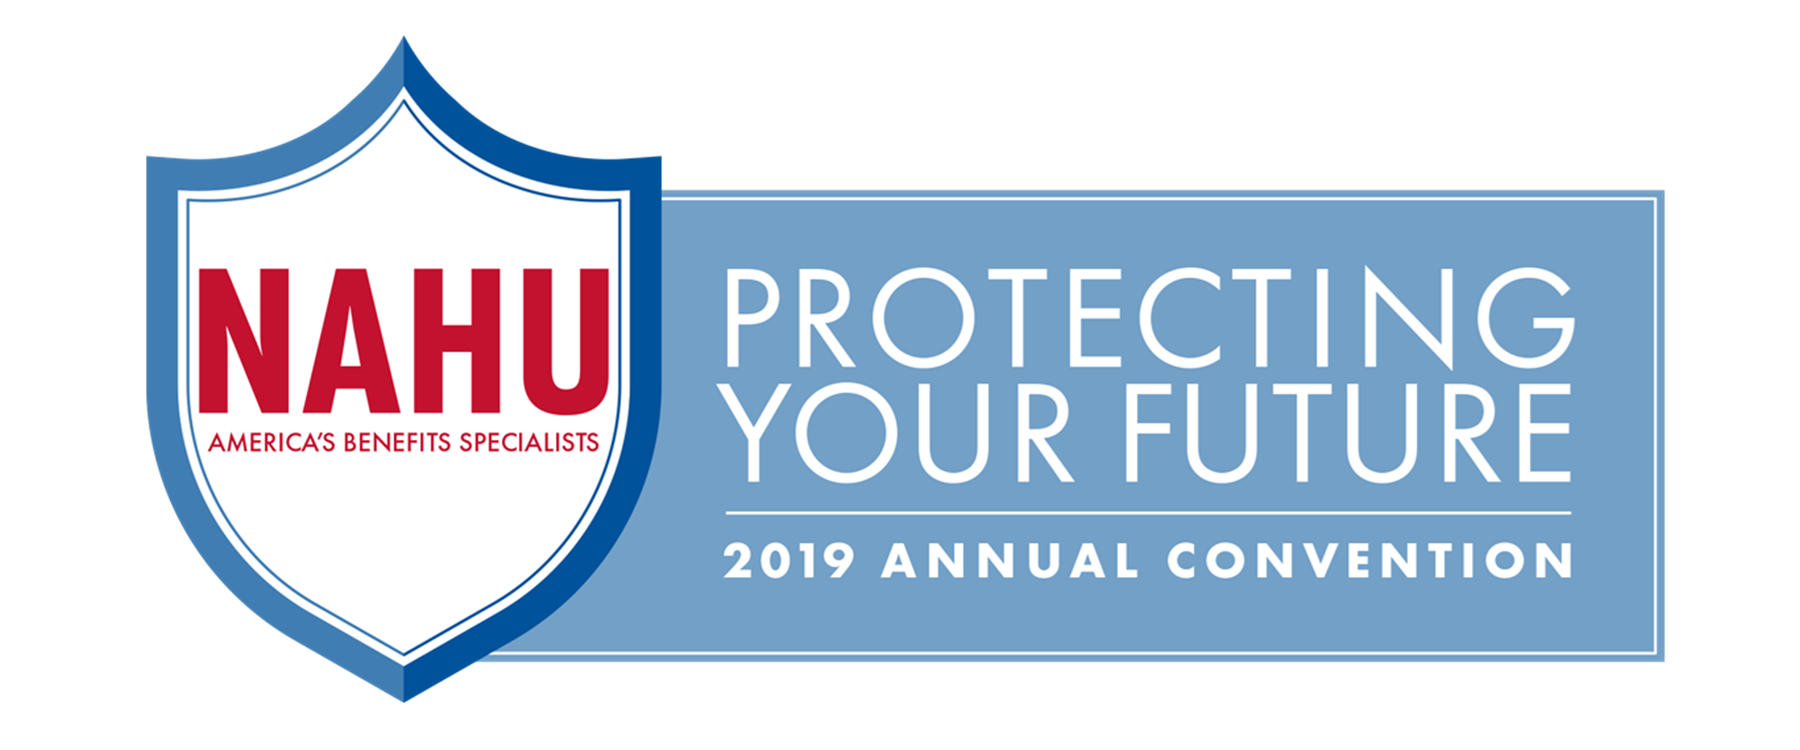 ProtectingYourFuture2019